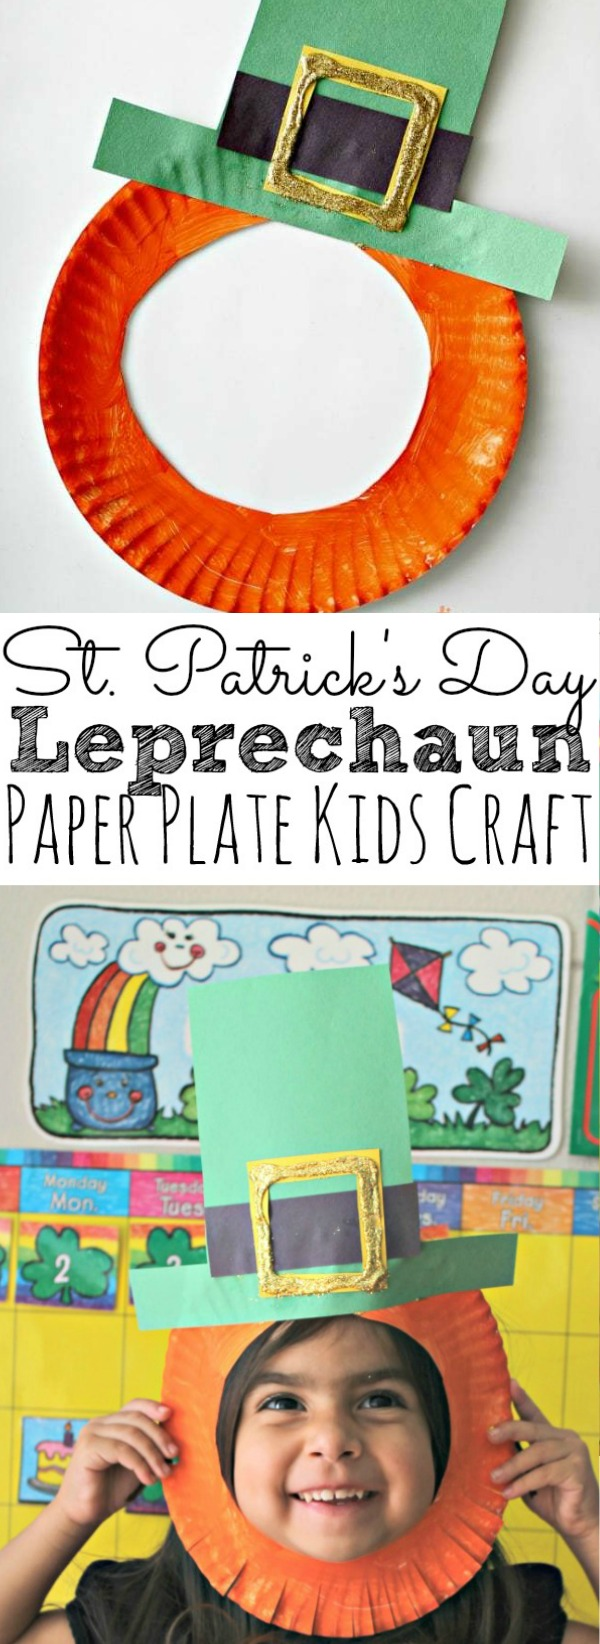 St. Patrick's Day Leprechaun Paper Plate Kids Craft For March